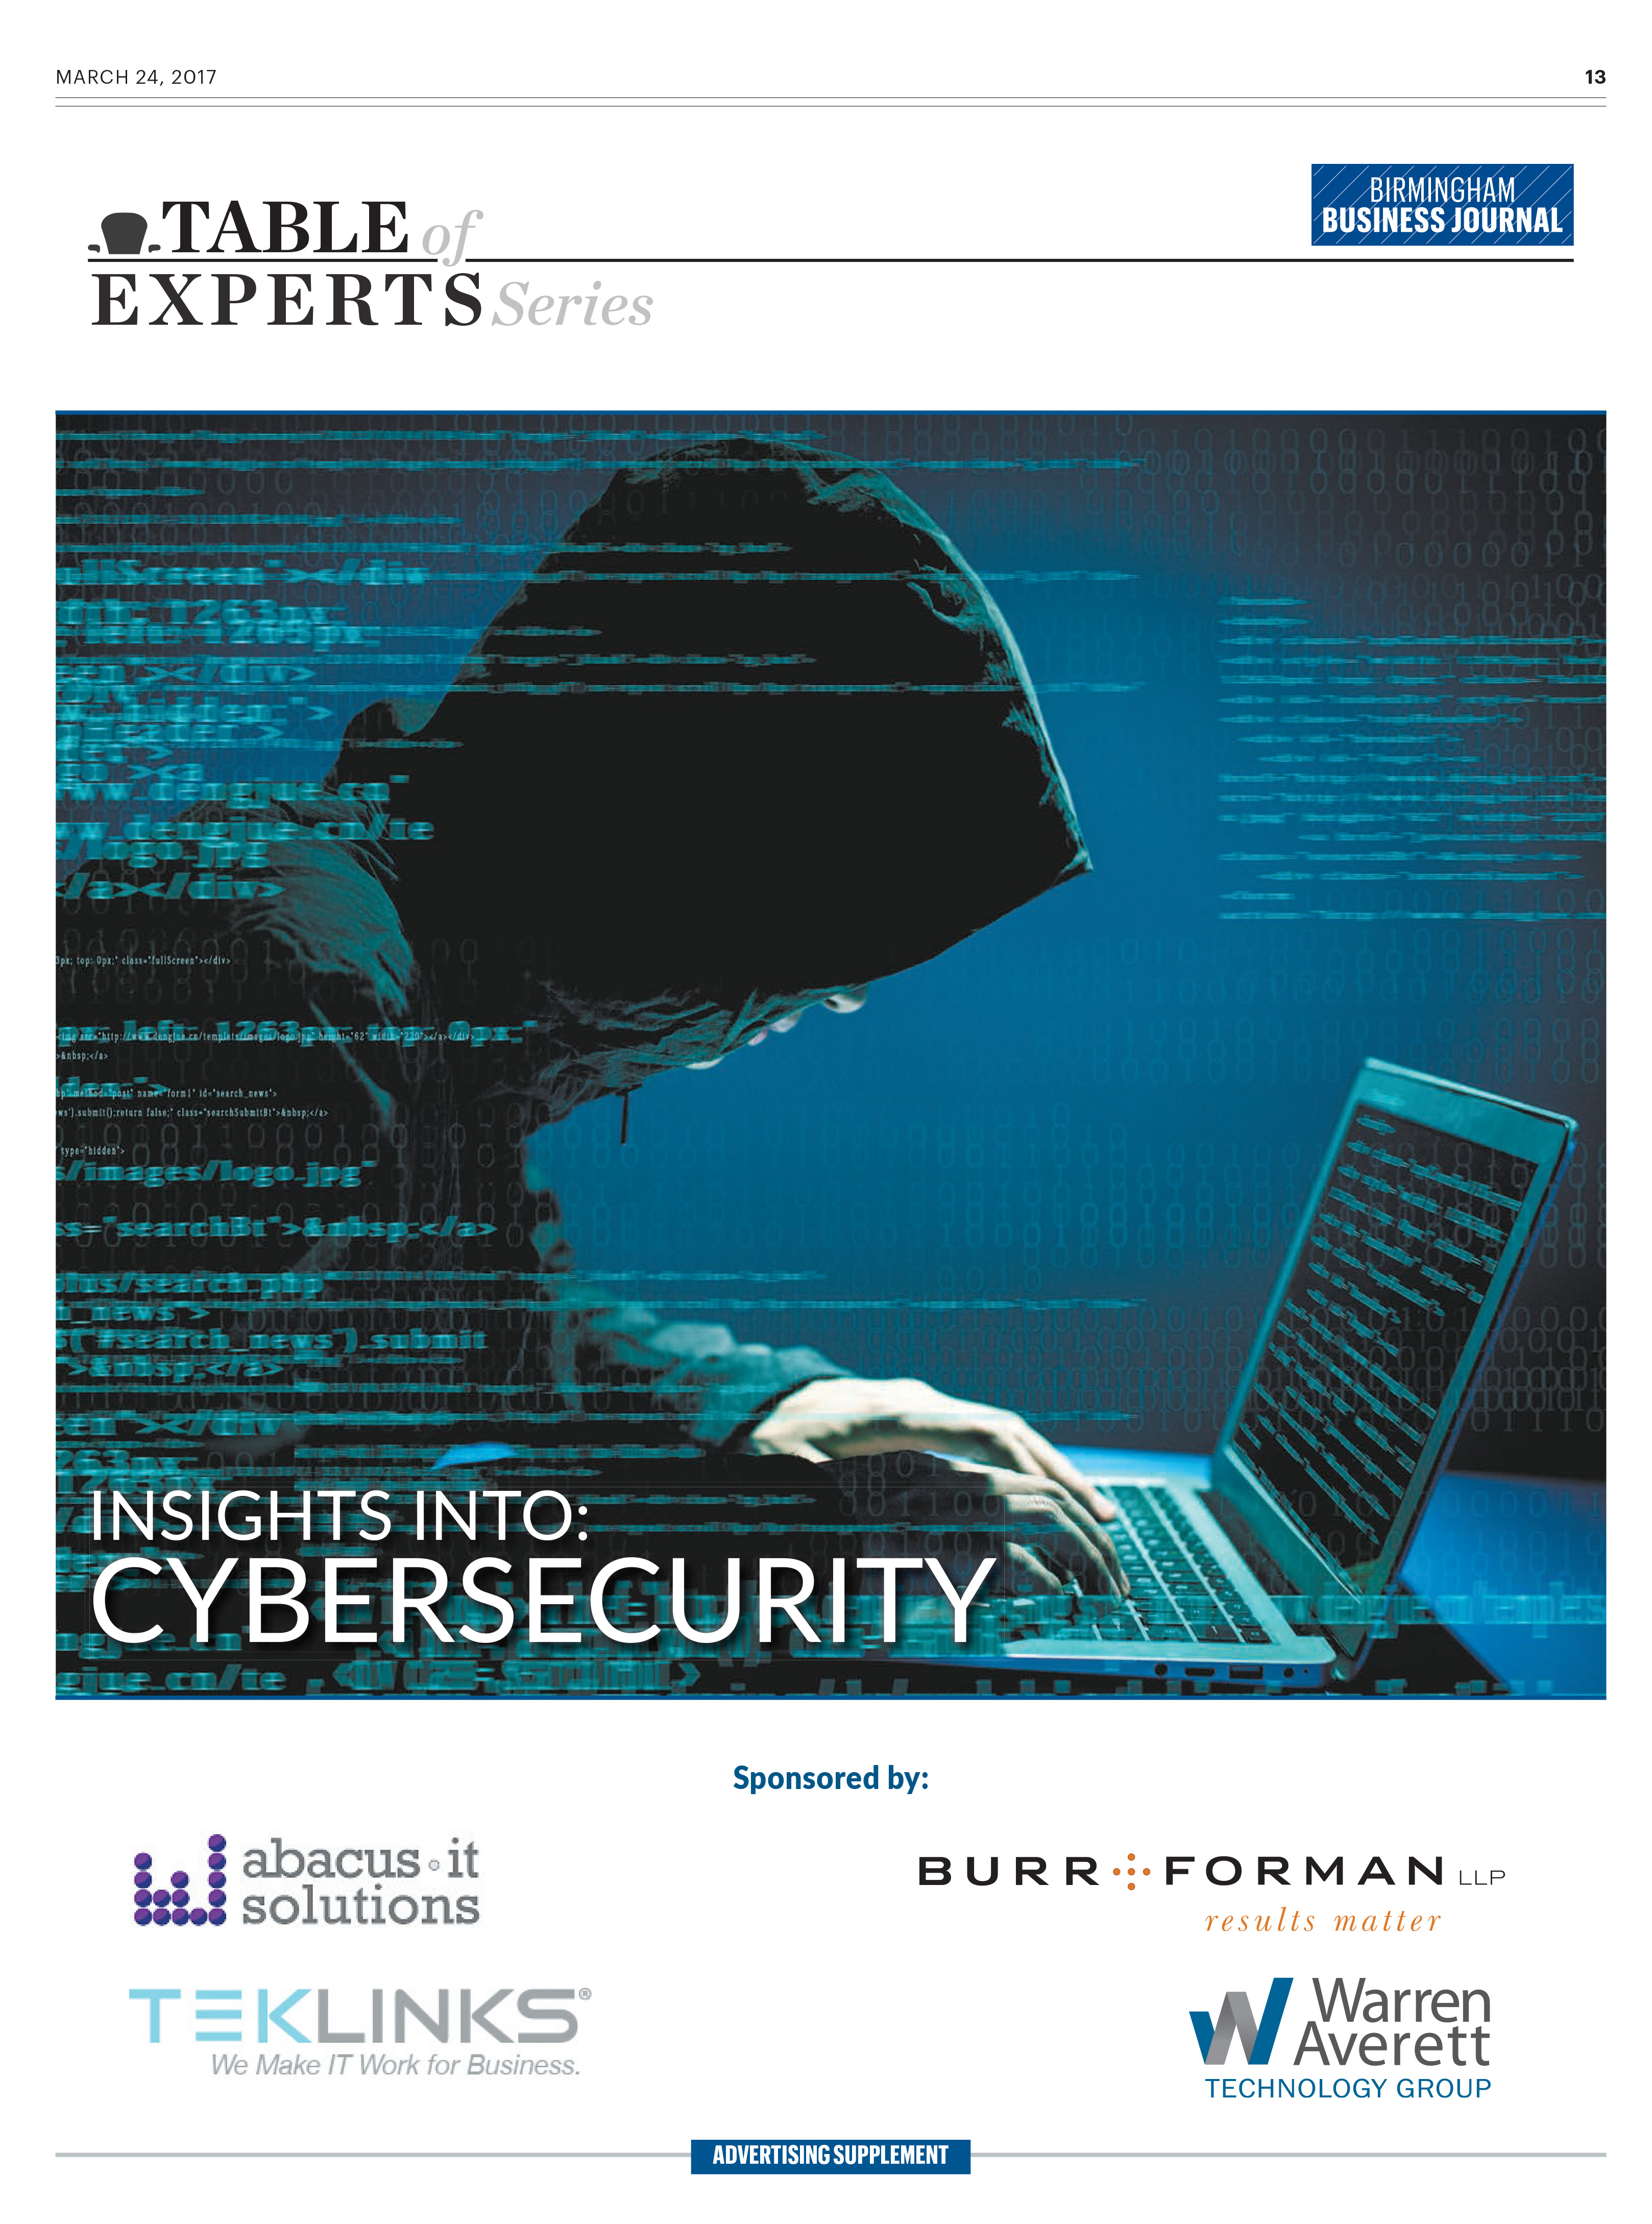 Cyber Security Photo